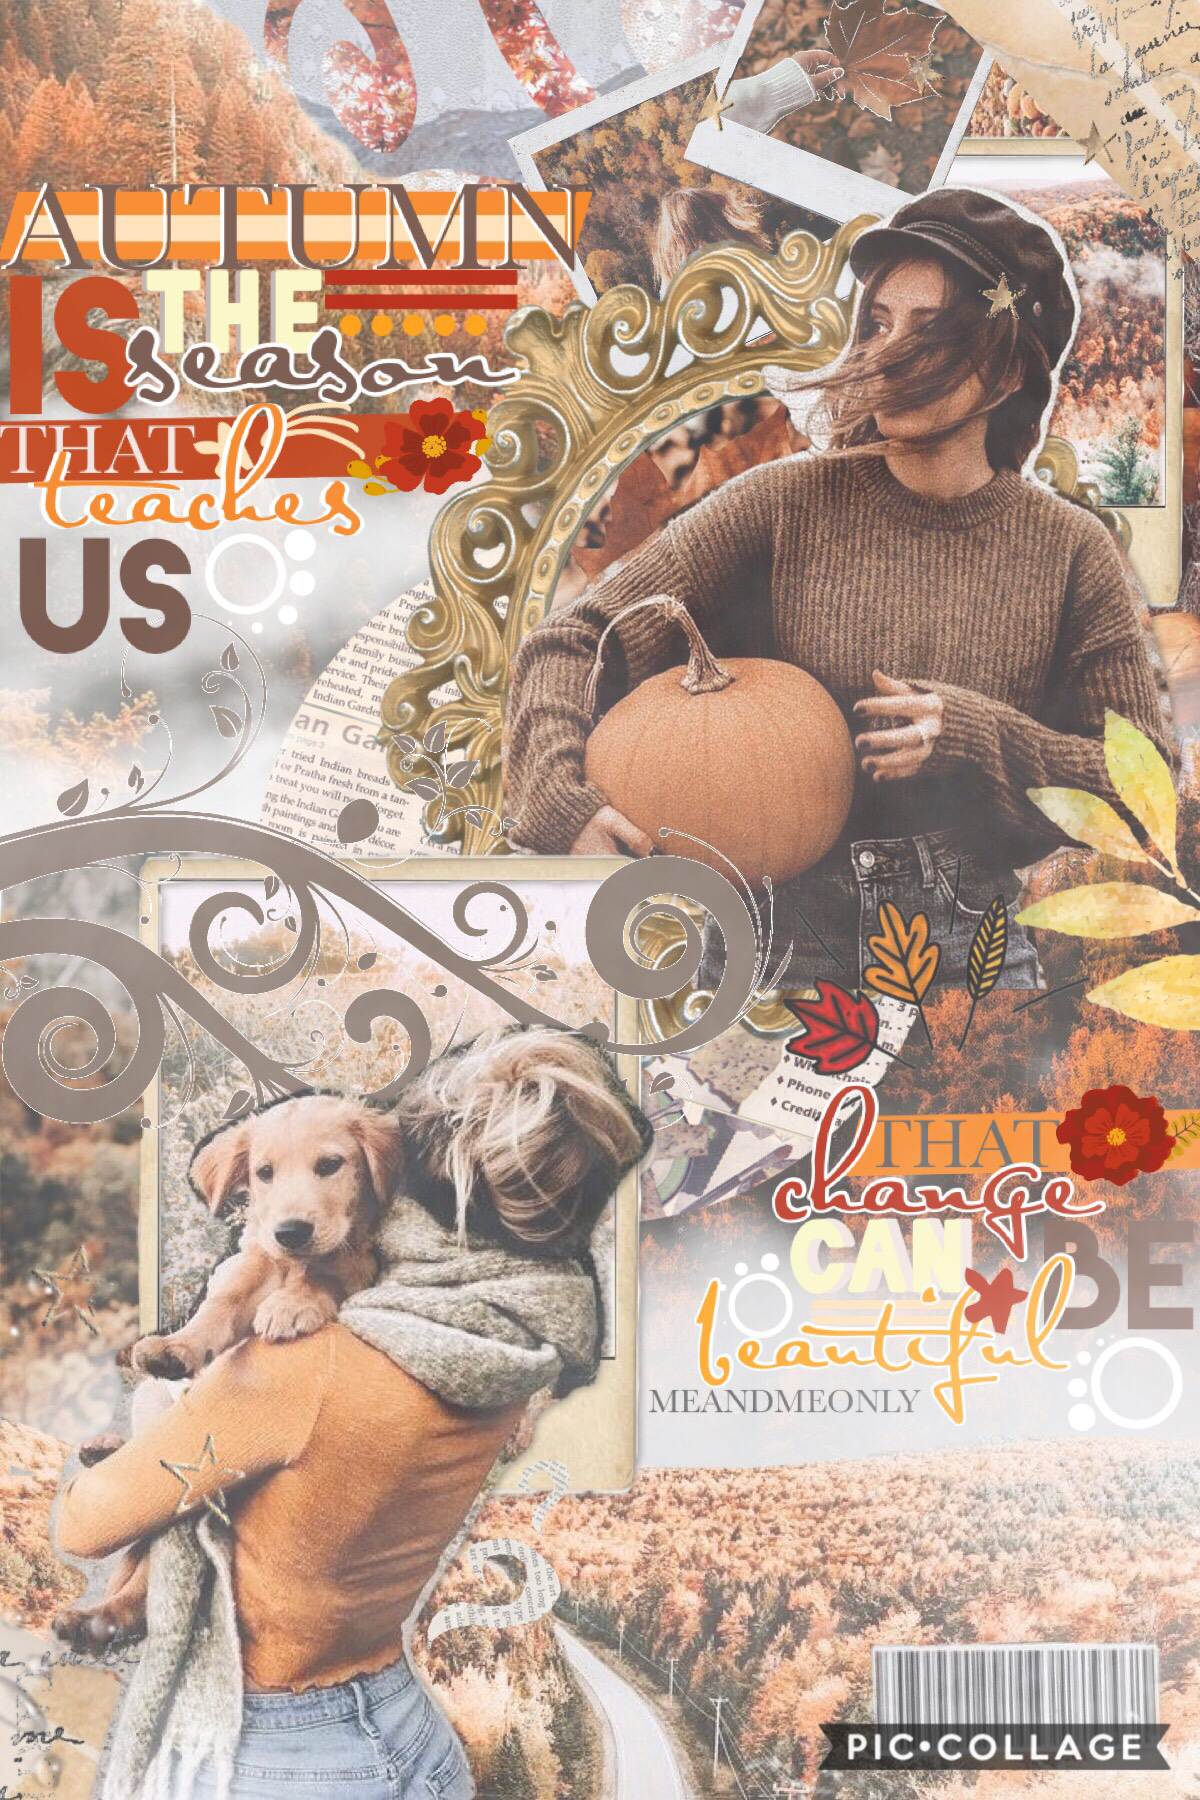 entry to @piccollage's fall contest🍁🌾 sorry for the inactivity🍊ee spring is here🌸🌻 tell me about the most exciting part of your day? remember you are all such beautiful beings🤩👏